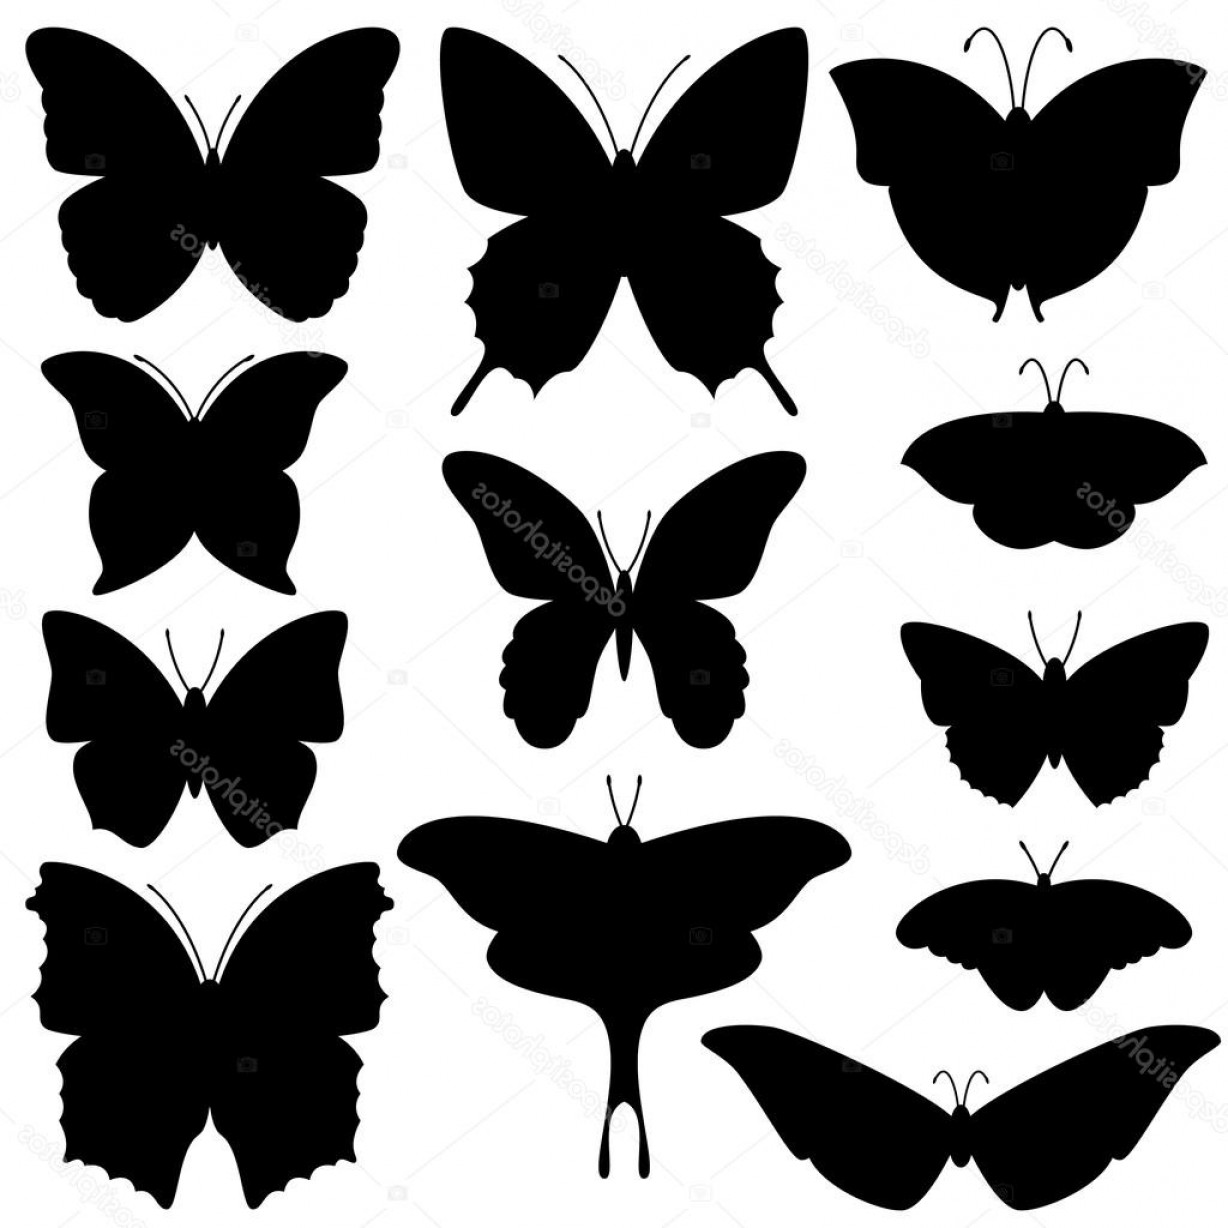 Mariposa Vector: Stock Illustration Vector Collection Of Butterfly Silhouettes